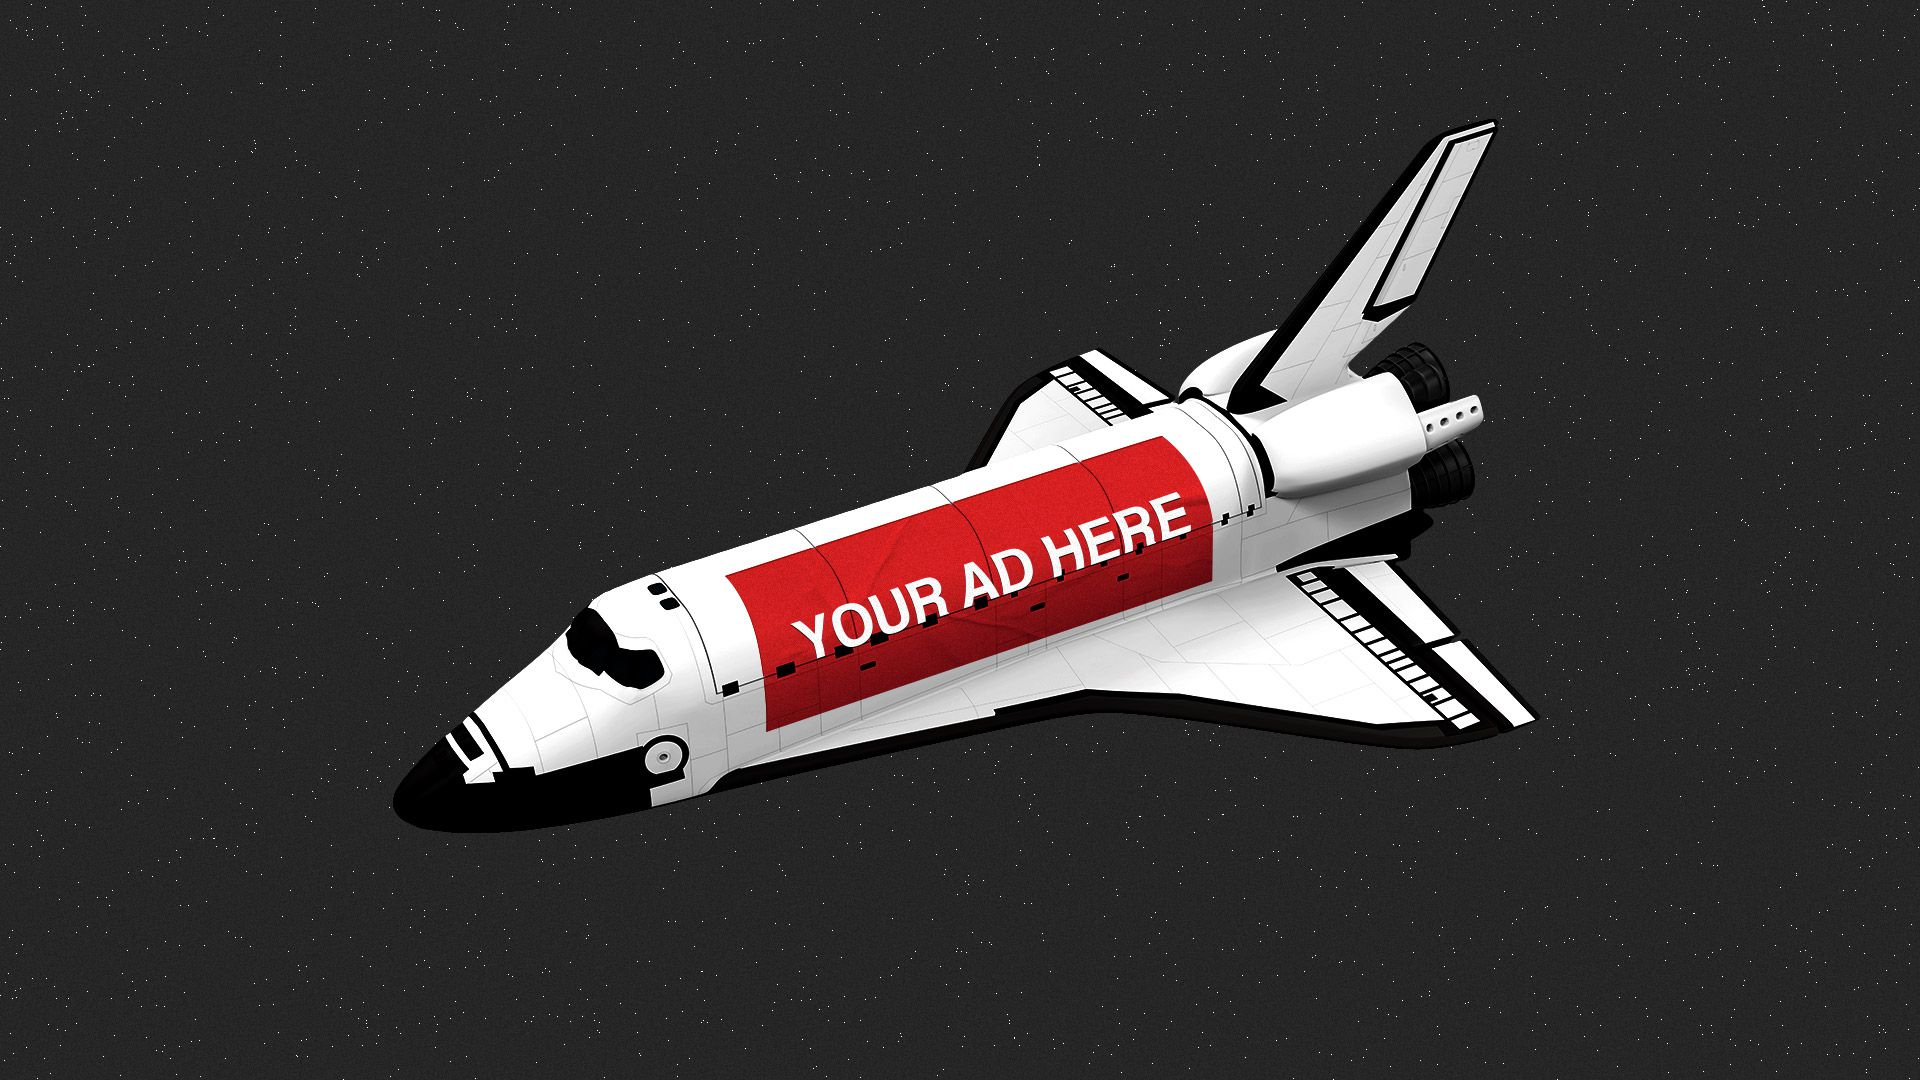 """Illustration of a space shuttle with a """"YOUR AD HERE"""" vinyl billboard pasted along the side."""